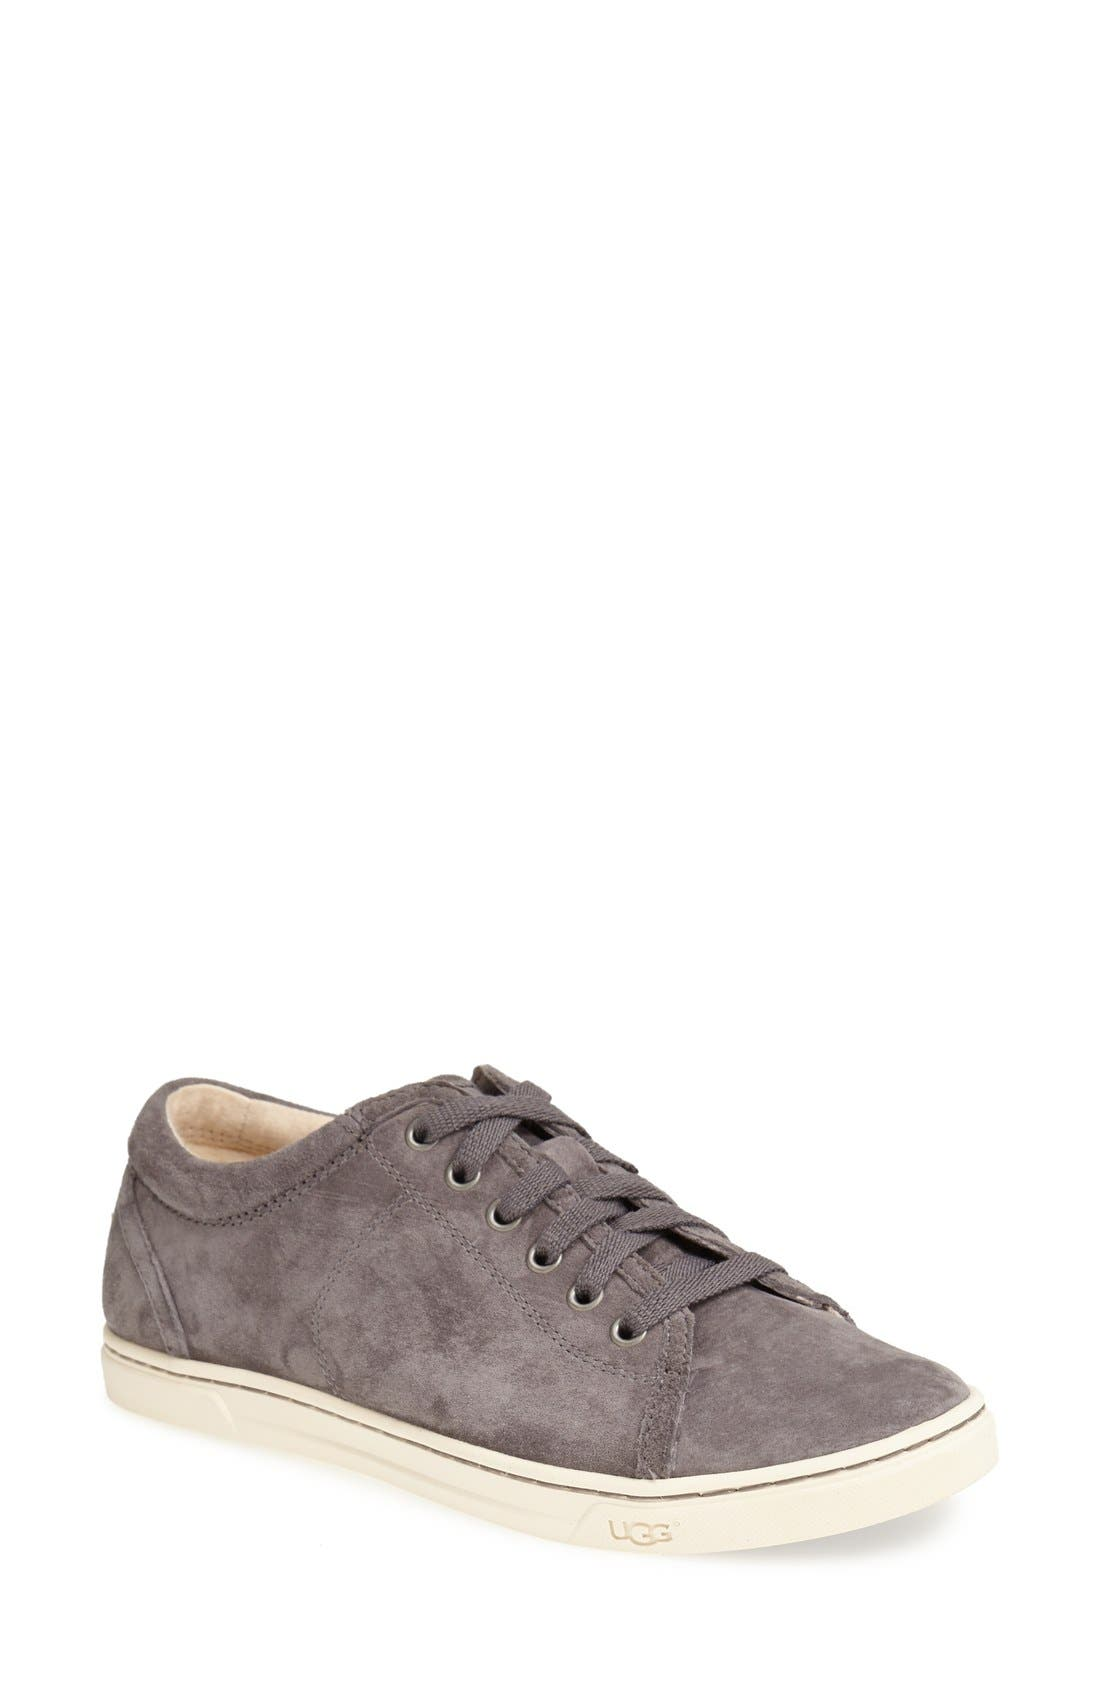 Main Image - UGG® 'Tomi' Water Resistant Suede Sneaker (Women)